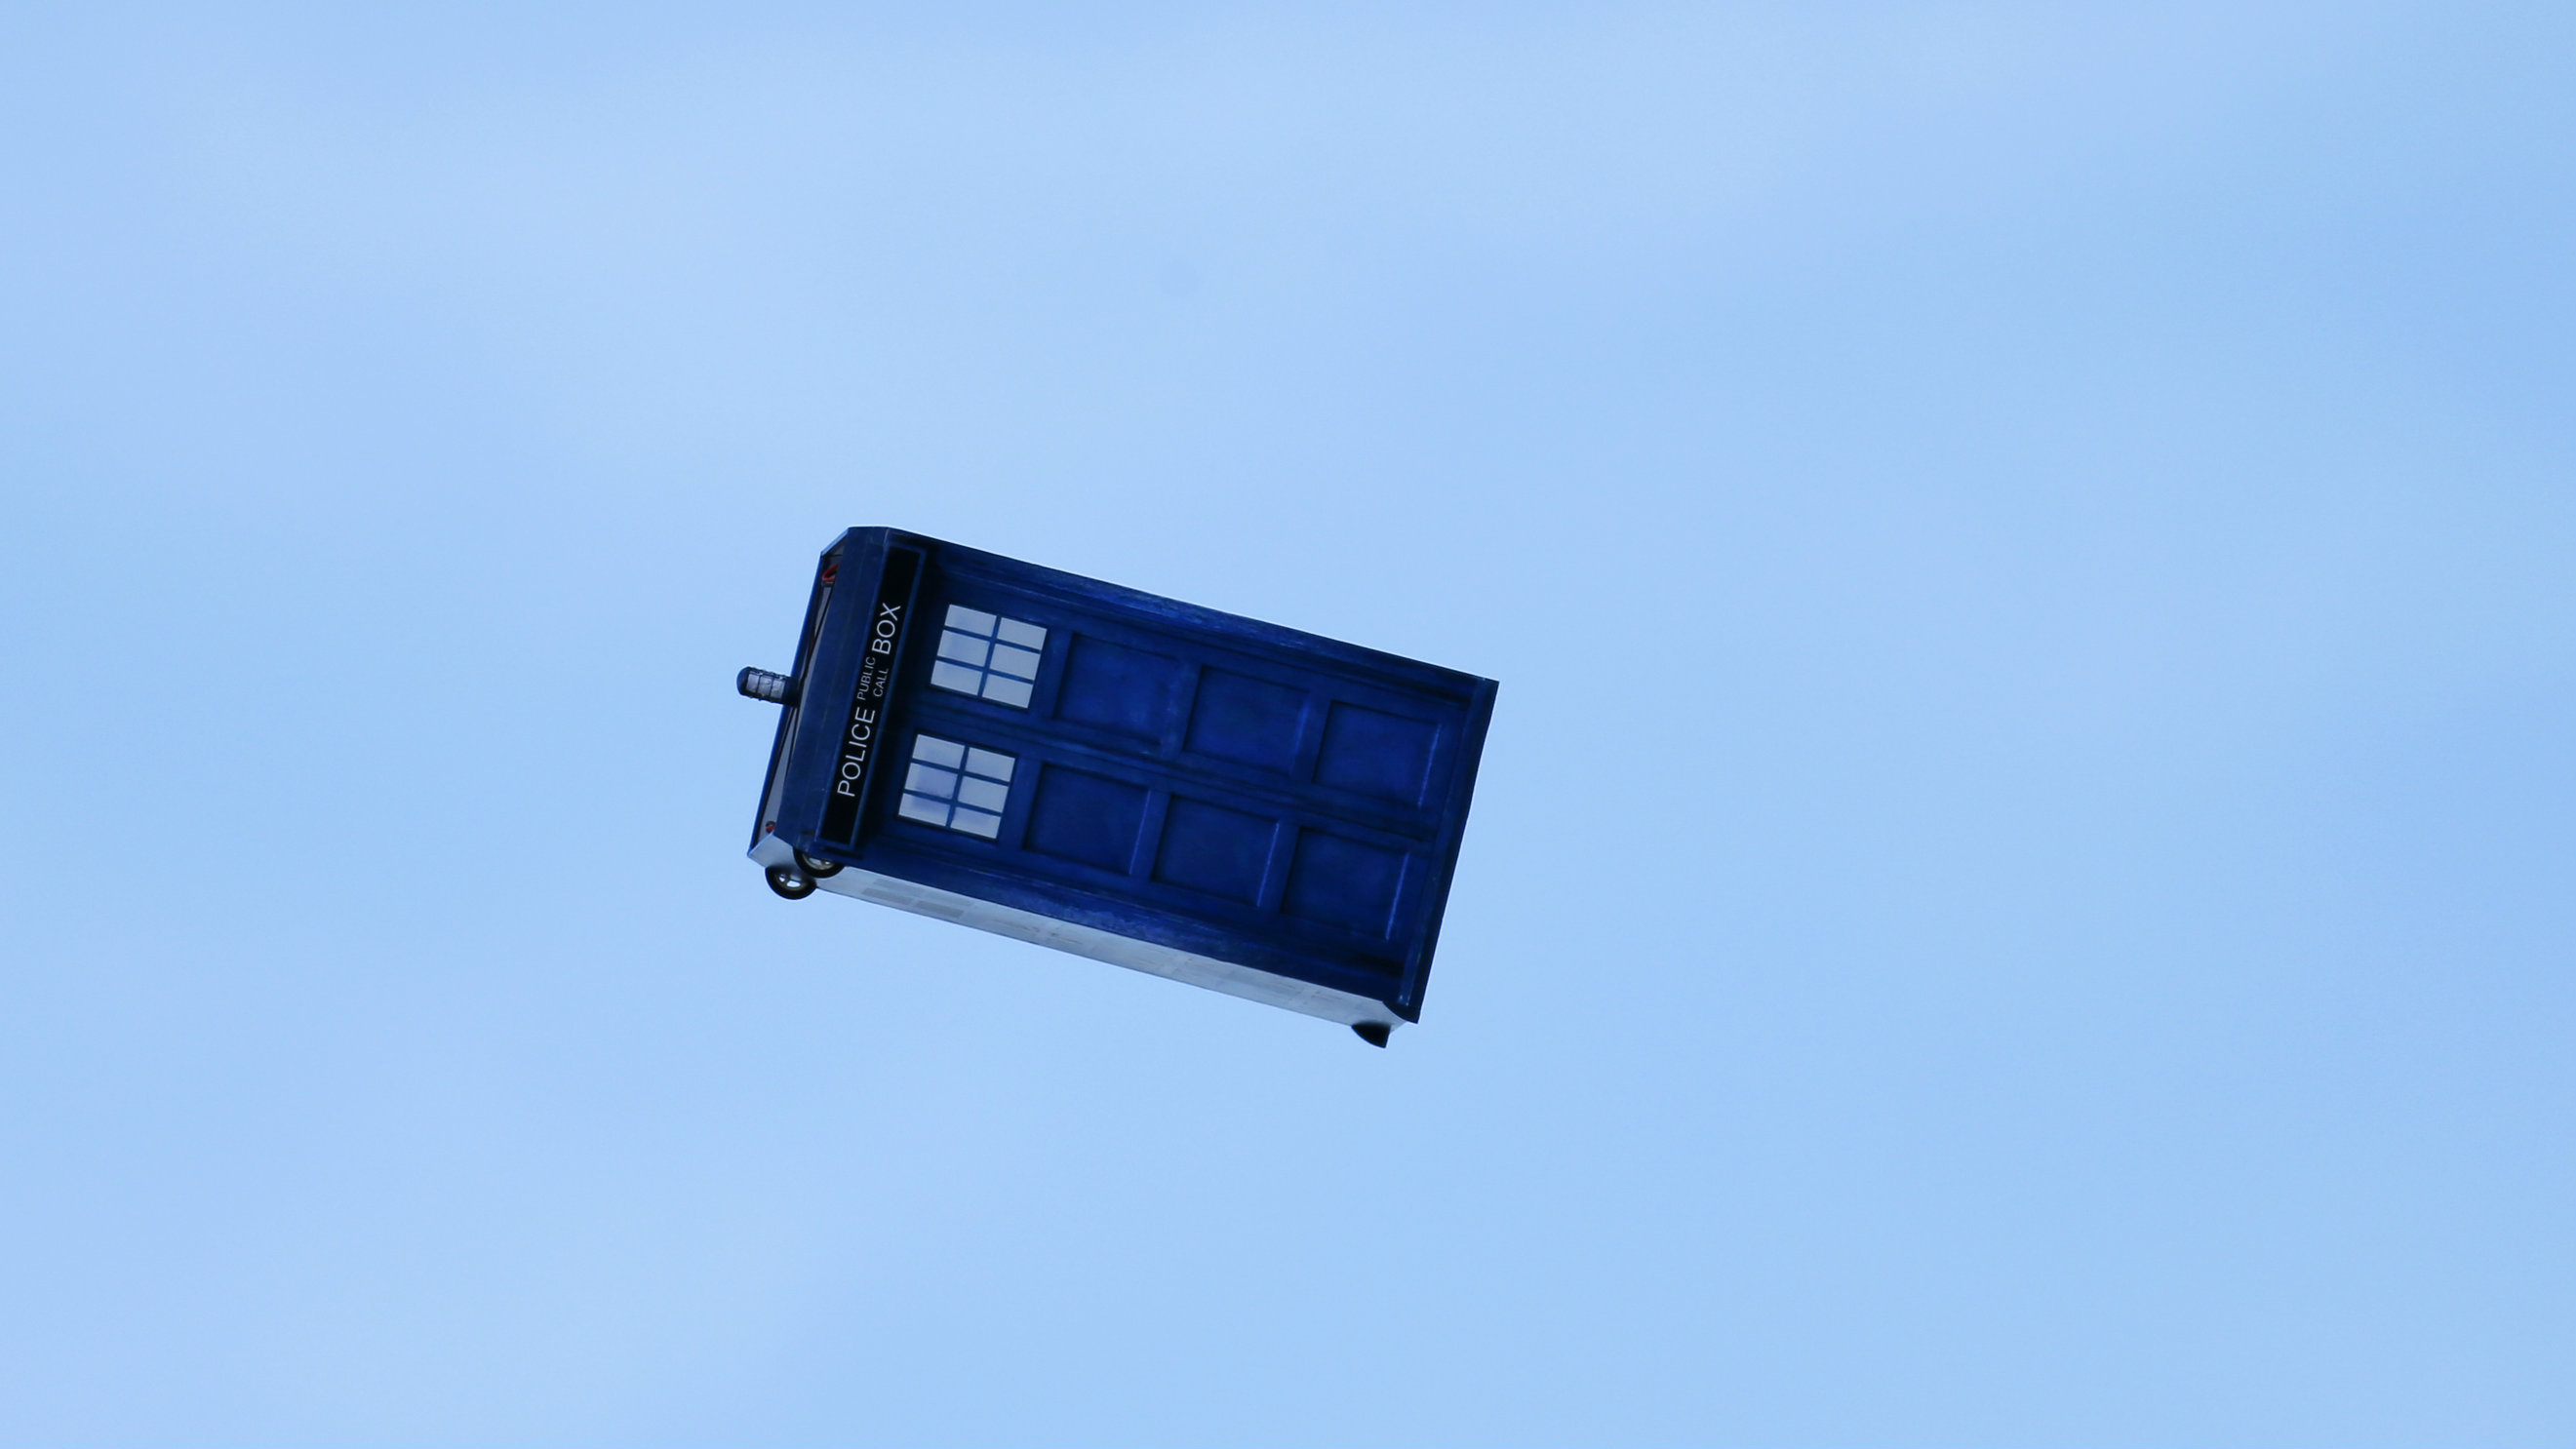 """A flying """"Tardis"""" remote control air craft is test flown in San Diego, California November18, 2013. Inventor Otto Dieffenbach built the """"Tardis"""", an old fashioned police call box used as a time machine in the British television series Dr. Who, to celebrate the show's 50th season this year. REUTERS/Mike Blake (UNITED STATES - Tags: ENTERTAINMENT SOCIETY SCIENCE TECHNOLOGY)"""